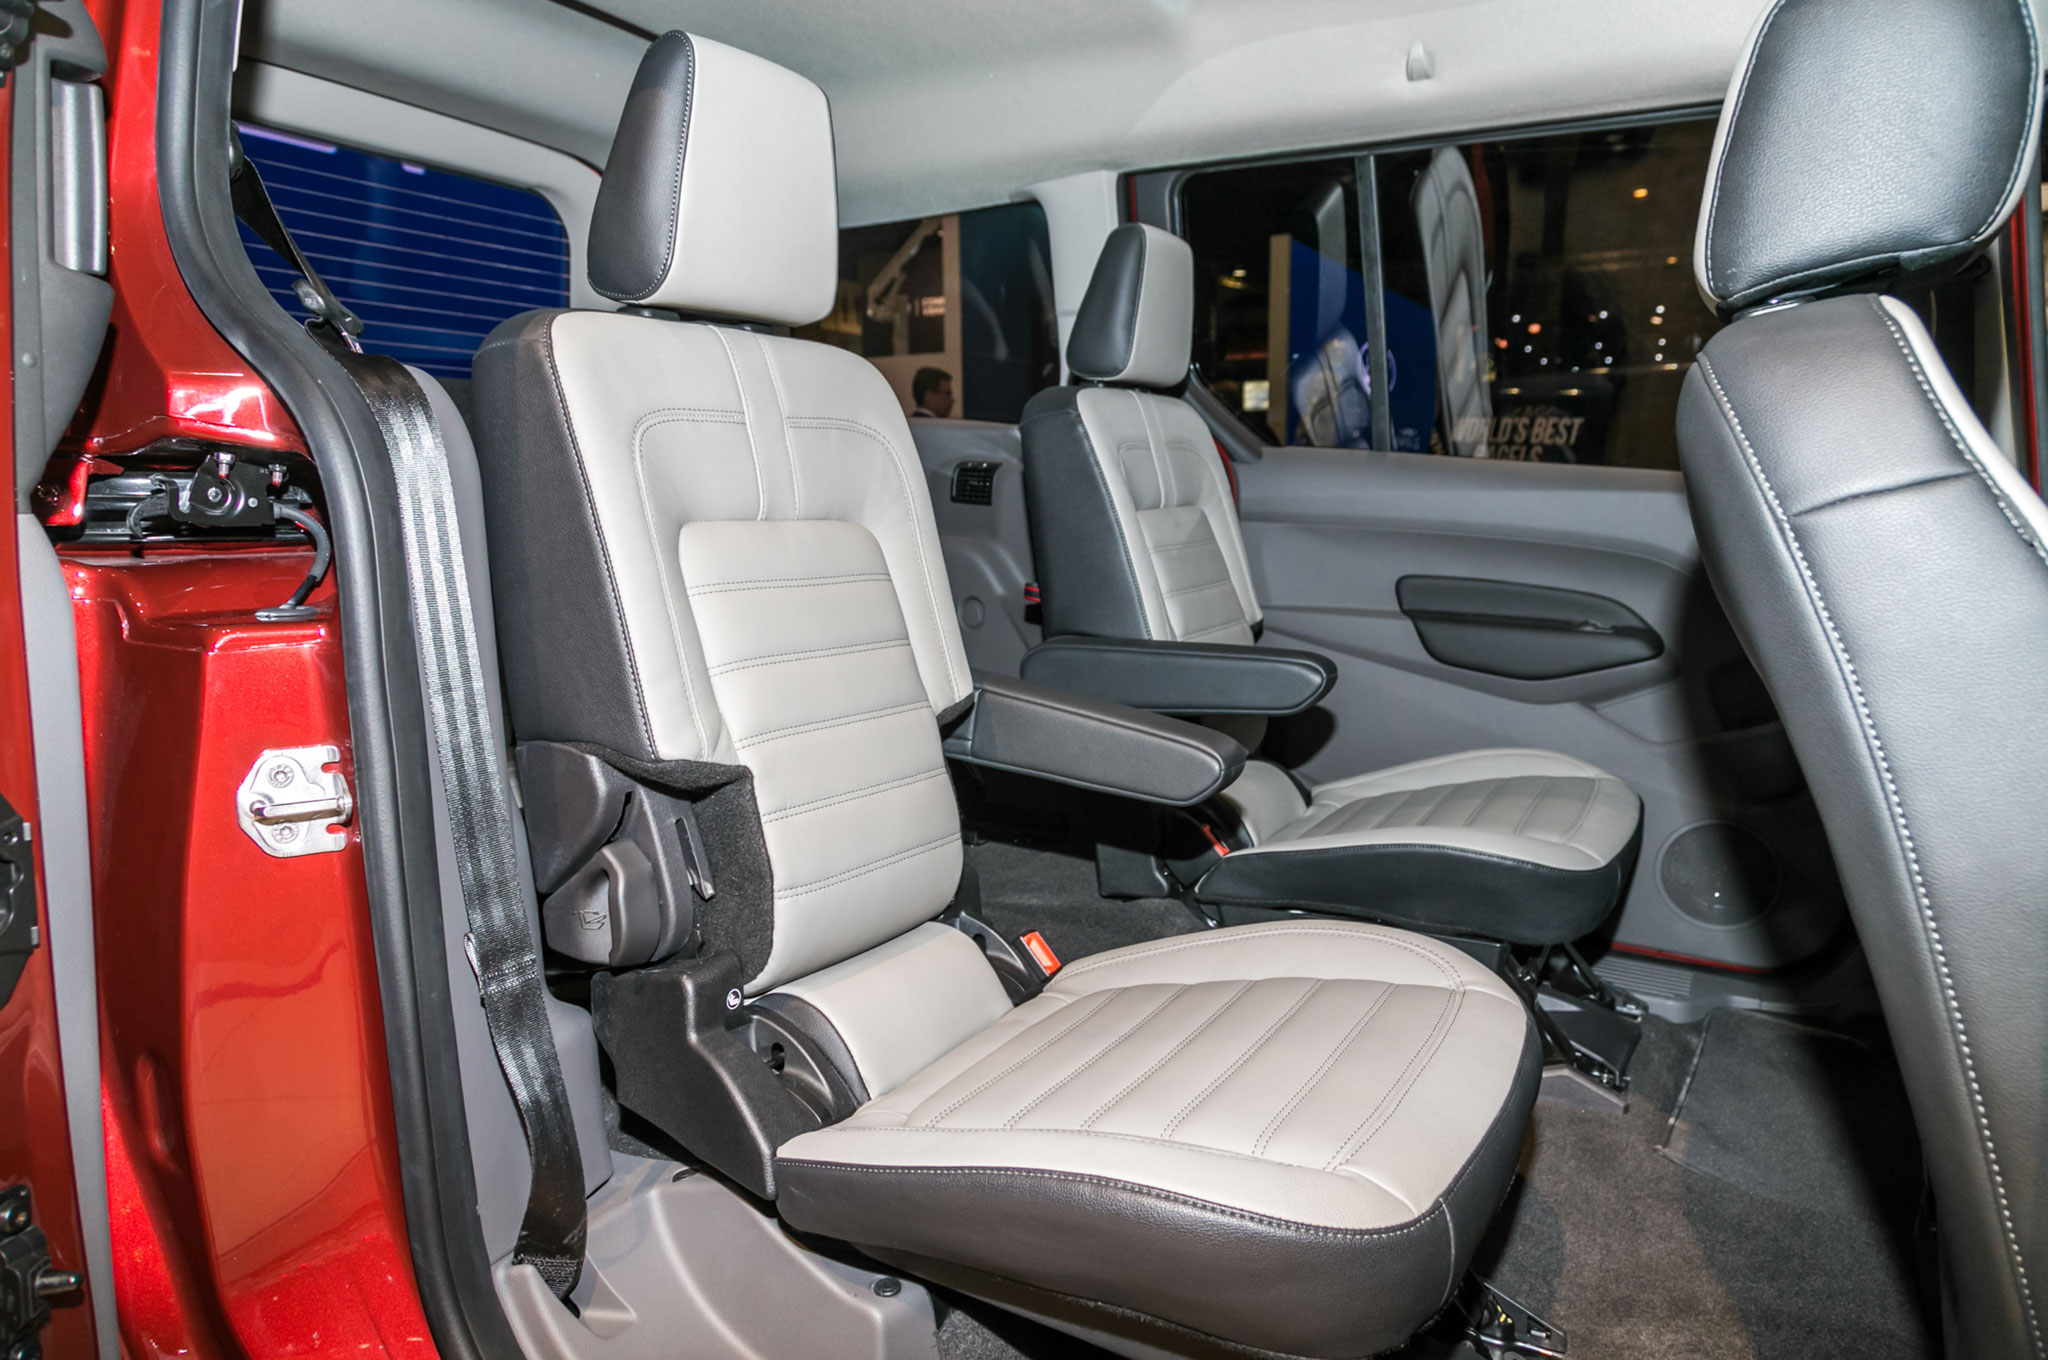 Ford Takes On The Chrysler Pacifica With An Updated Transit Connect 2015 Wagon Interior Show More